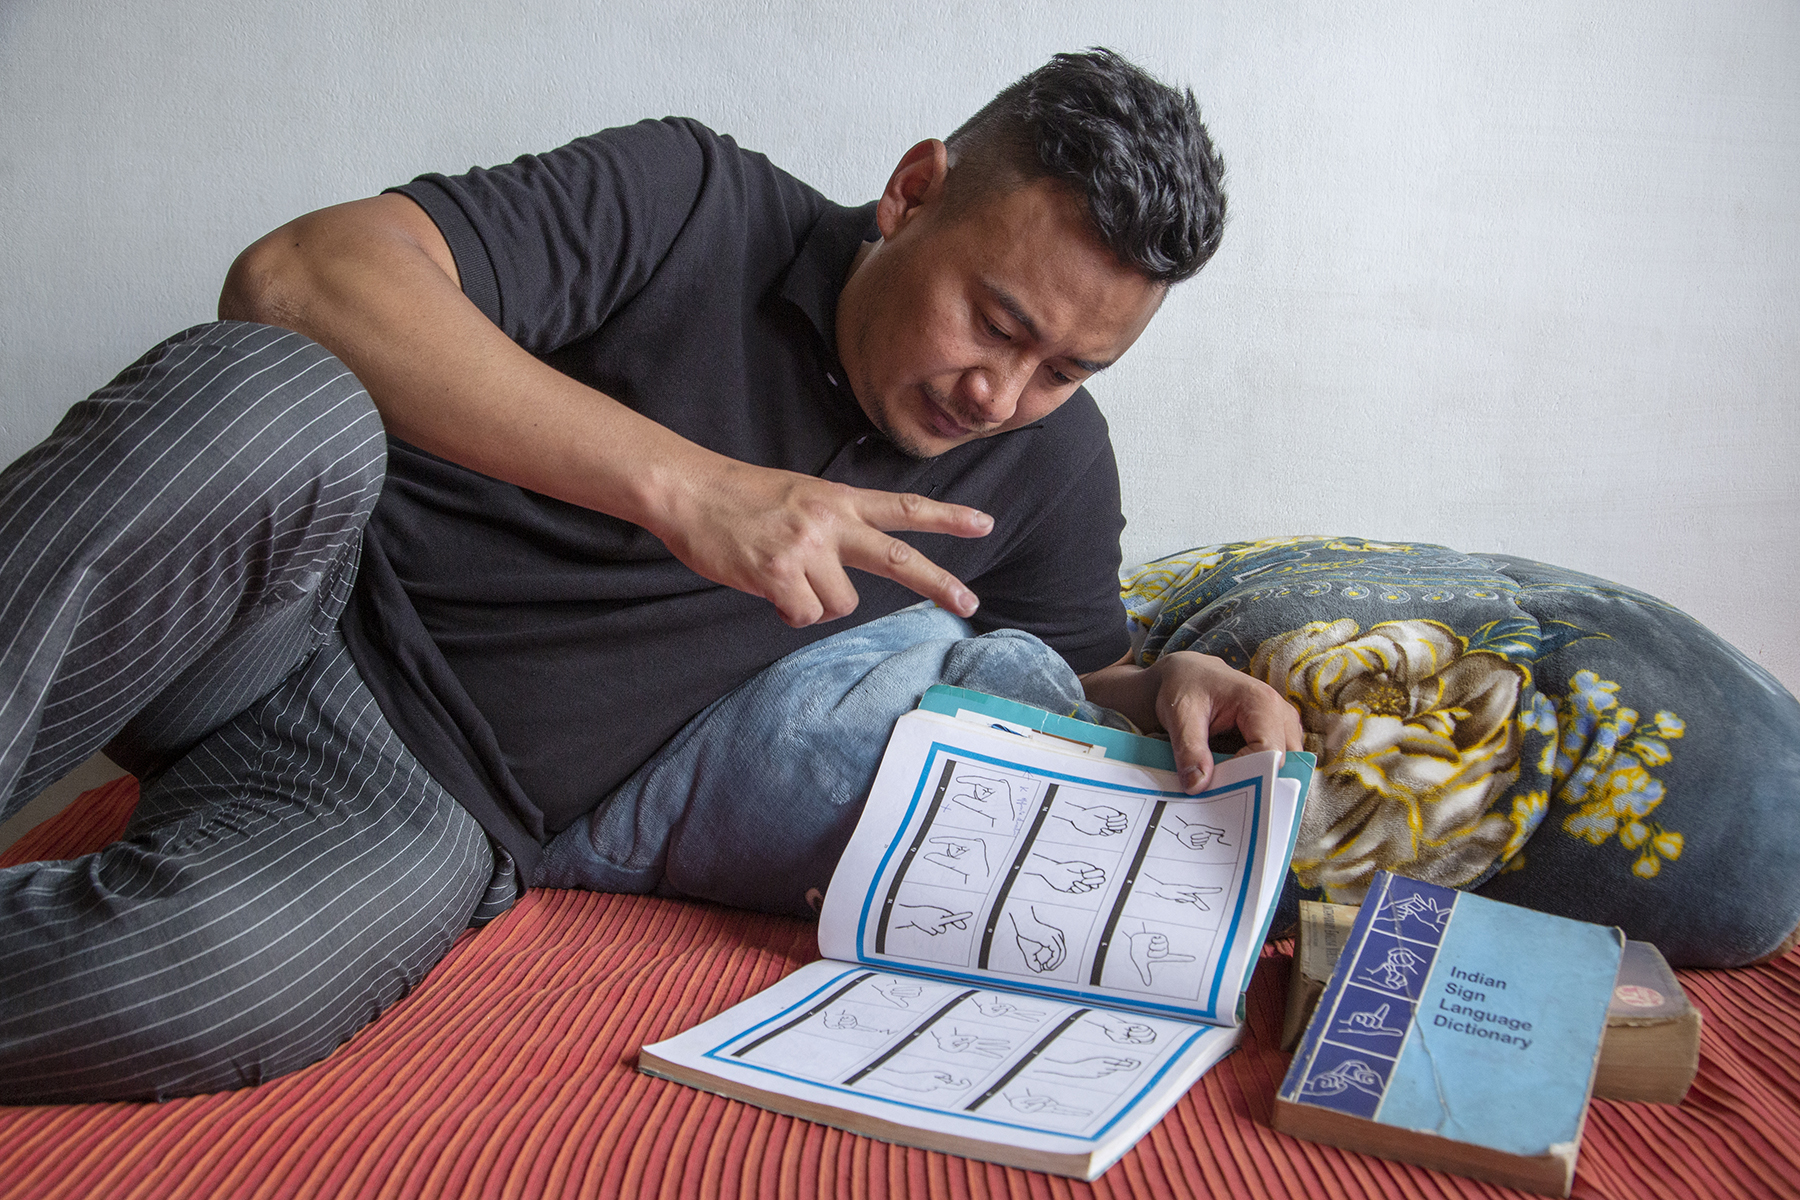 """Kilumo Ezung, in black T-shirt and black pants with grey pinstripes, is relaxing on a bed covered with a reddish orange bedsheet. He is lying on his side, left arm propped up on a pillow and left hand holding open a book with figures of hand signs outlined in black. He is gazing into the book and mimicking one of the figures by making a V sign with the fingers of his right hand. Next to this book is a thick book with a blue cover that says """"Indian Sign Language Dictionary""""."""